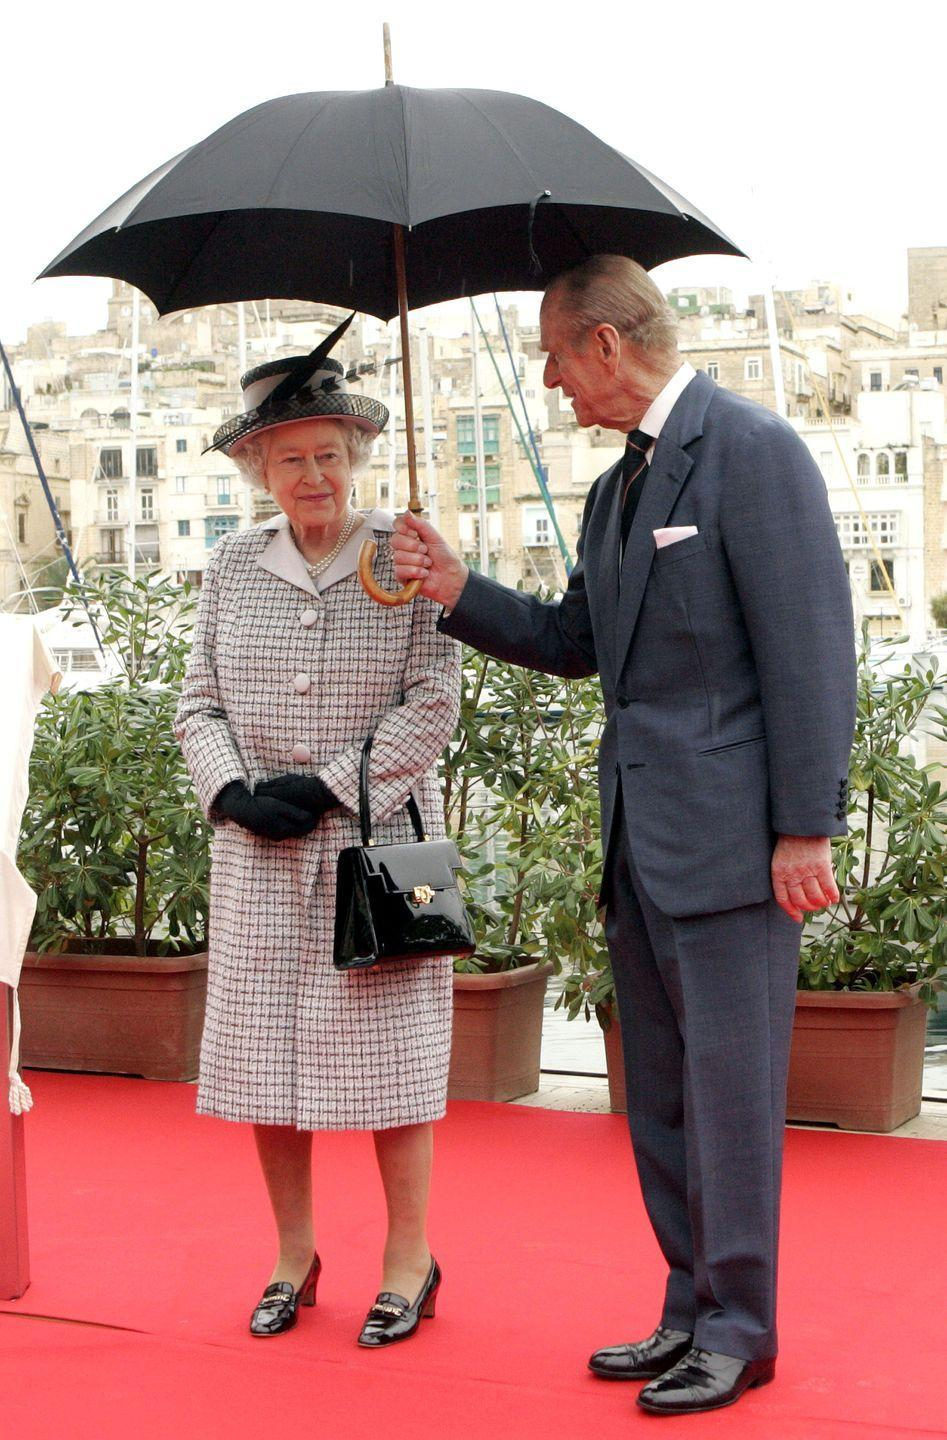 <p>The Duke of Edinburgh shelters the Queen from the rain (just like in Canada, 1976) during a visit to Malta for the official opening of the Grand Harbour Marina. </p>